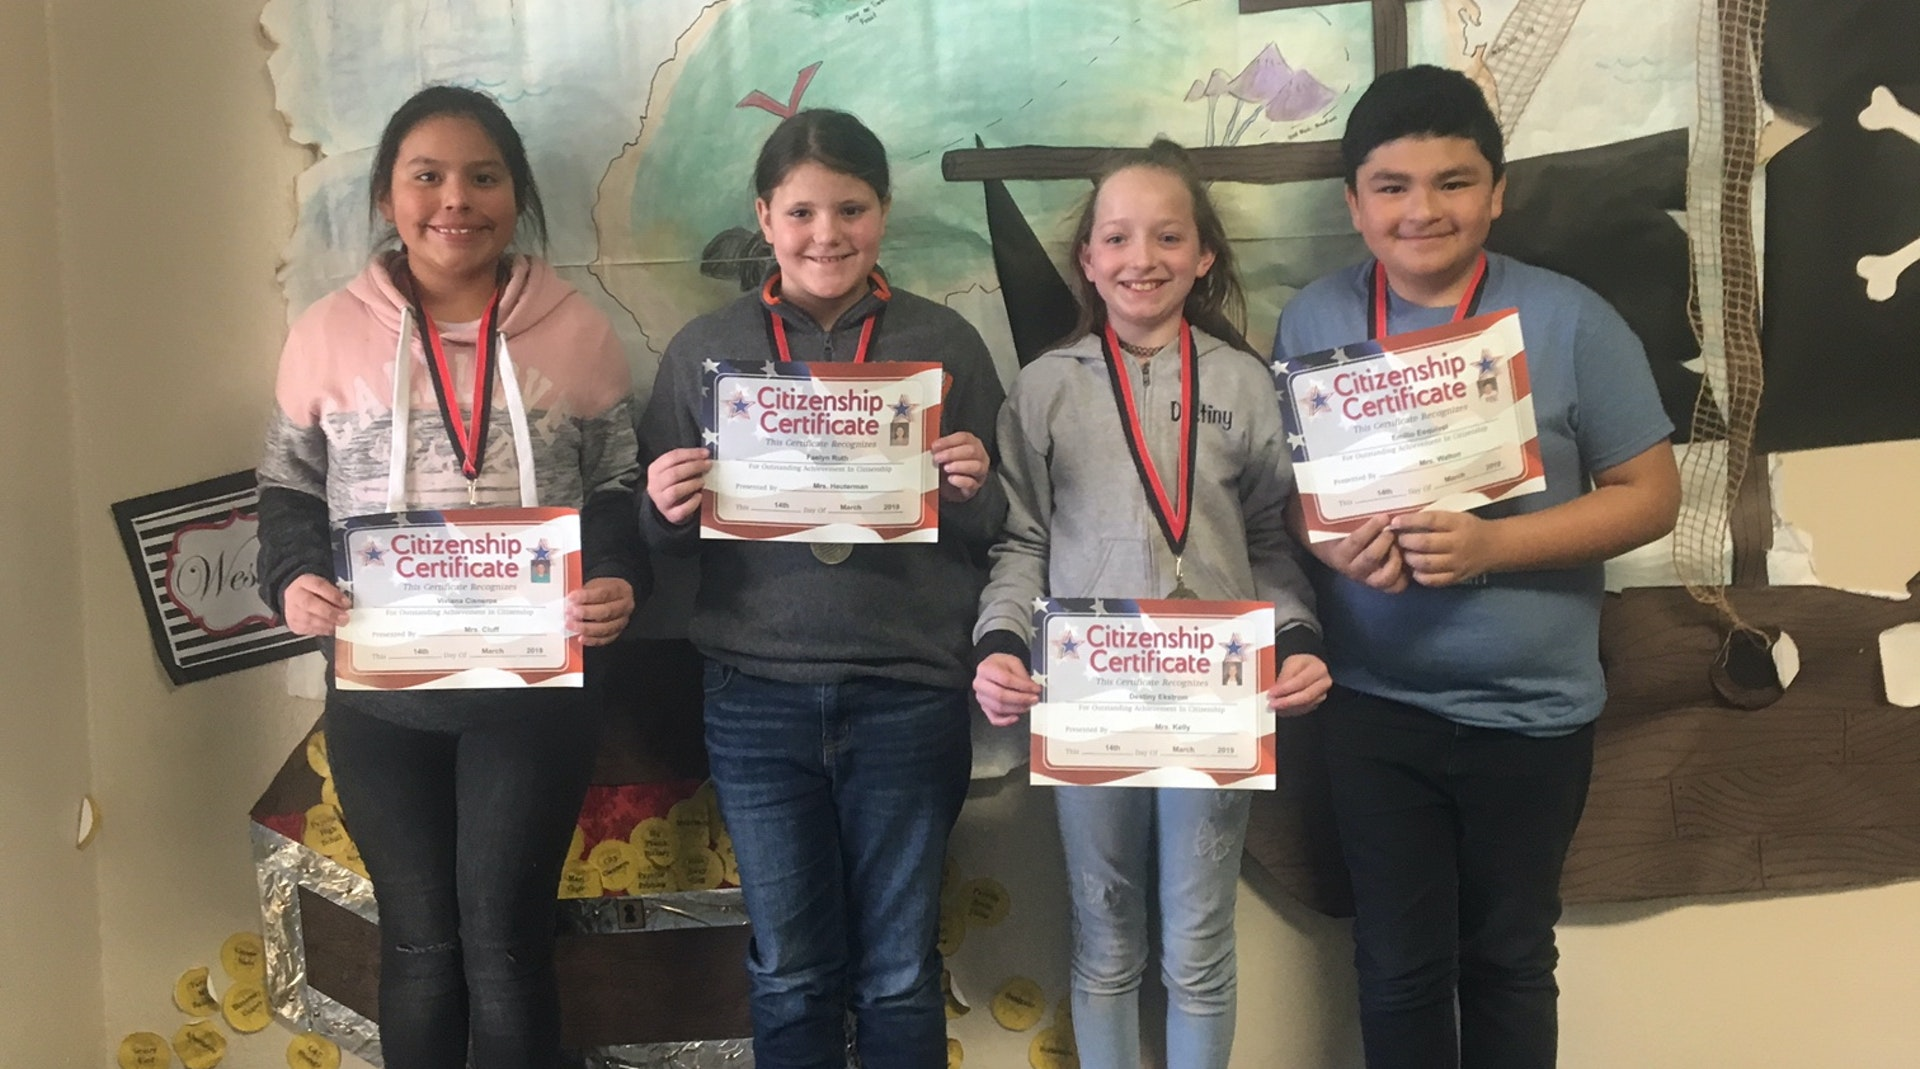 4th Grade children holding citizenship awards